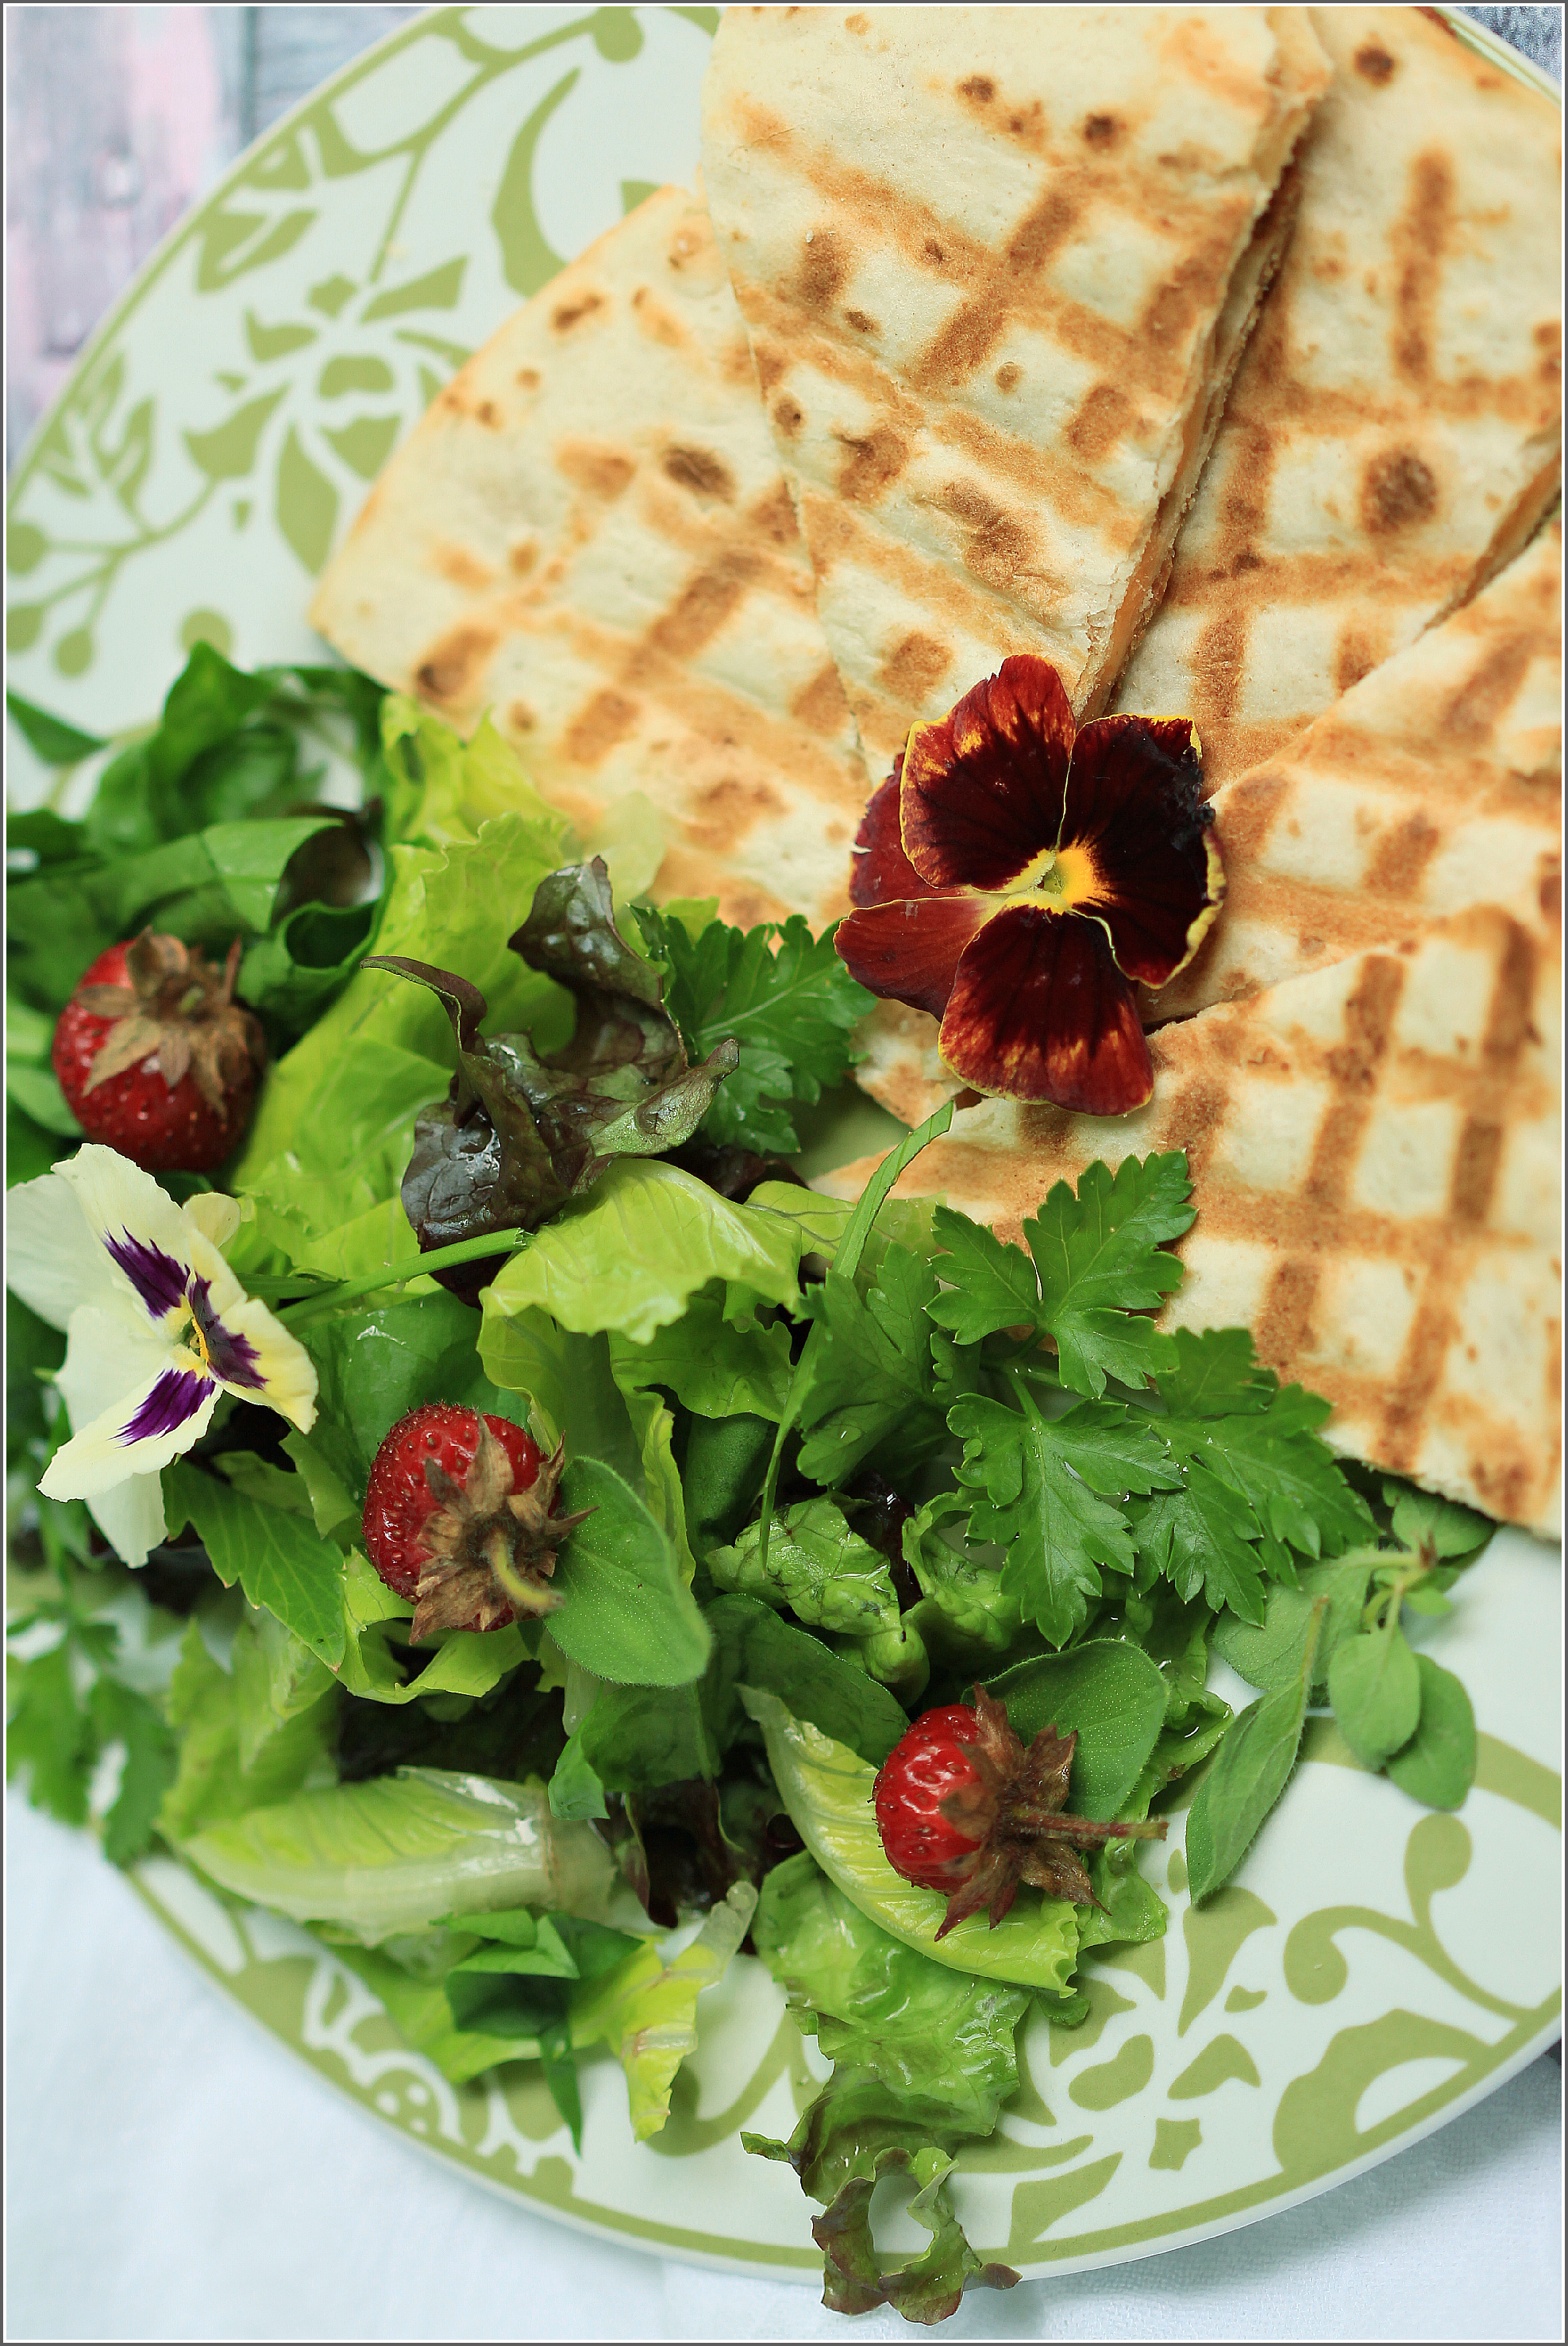 Cheese Quesadillas with Mixed Greens, Herbs and Strawberry Salad from Gathering Flavors